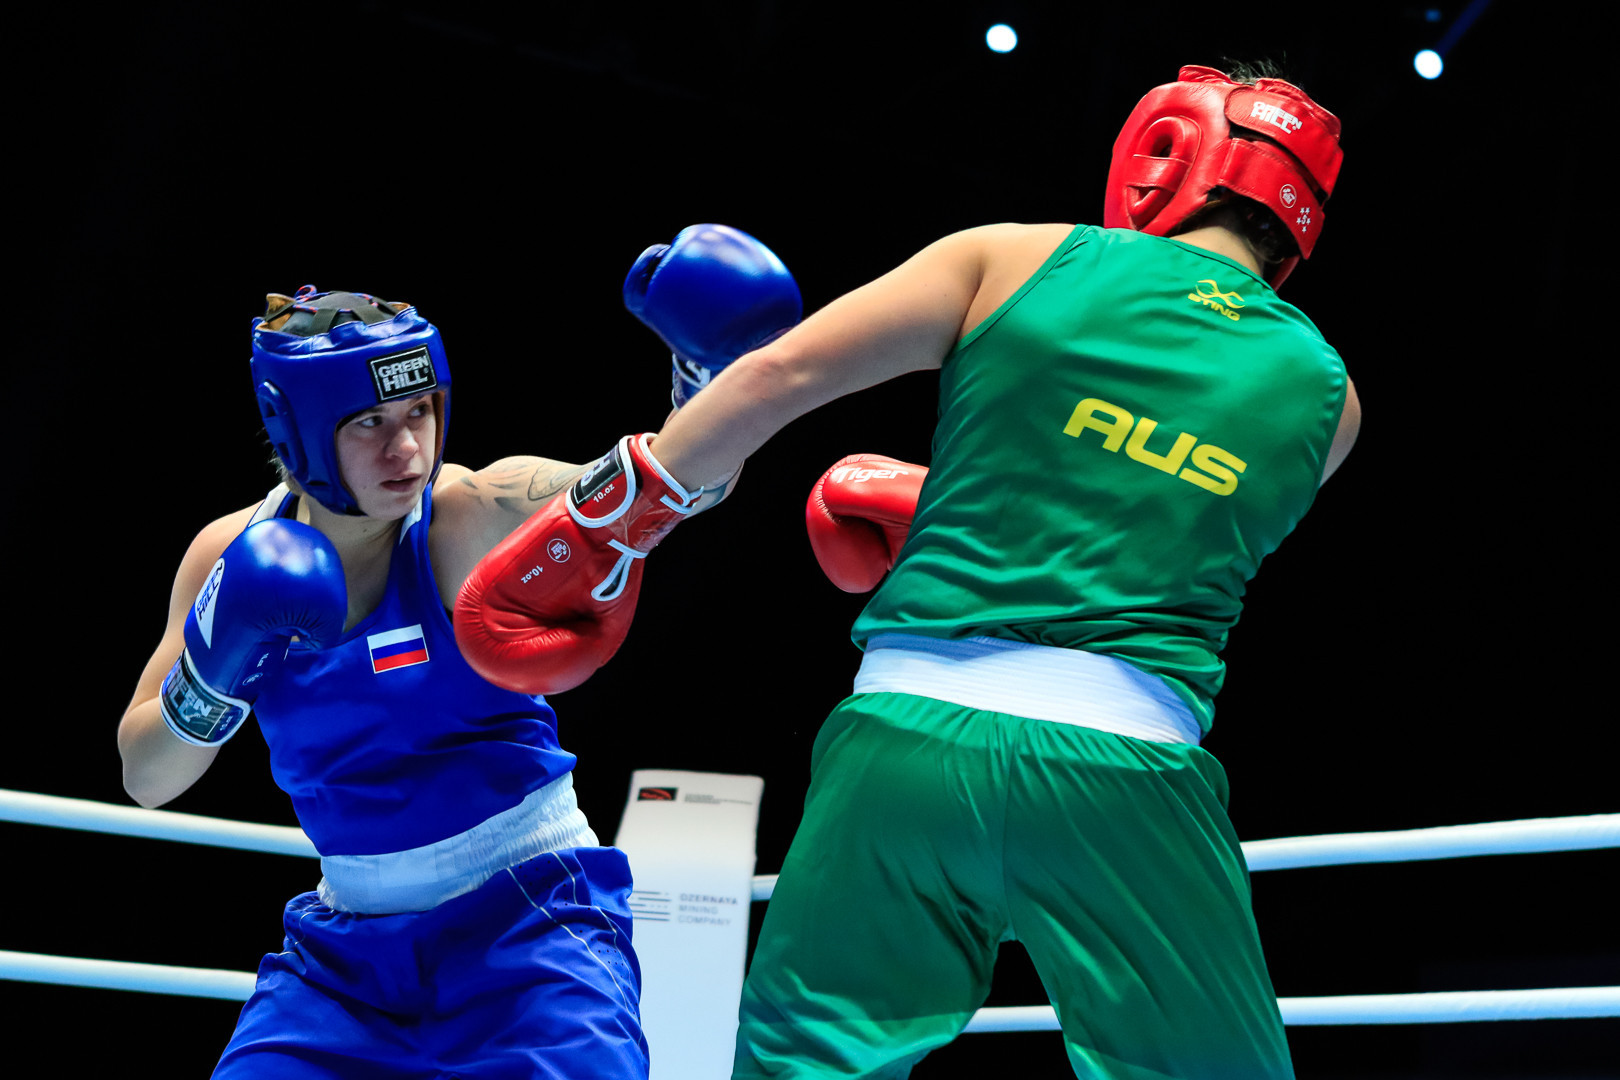 Young talent Dynnik continues Russian success at AIBA Women's World Boxing Championships